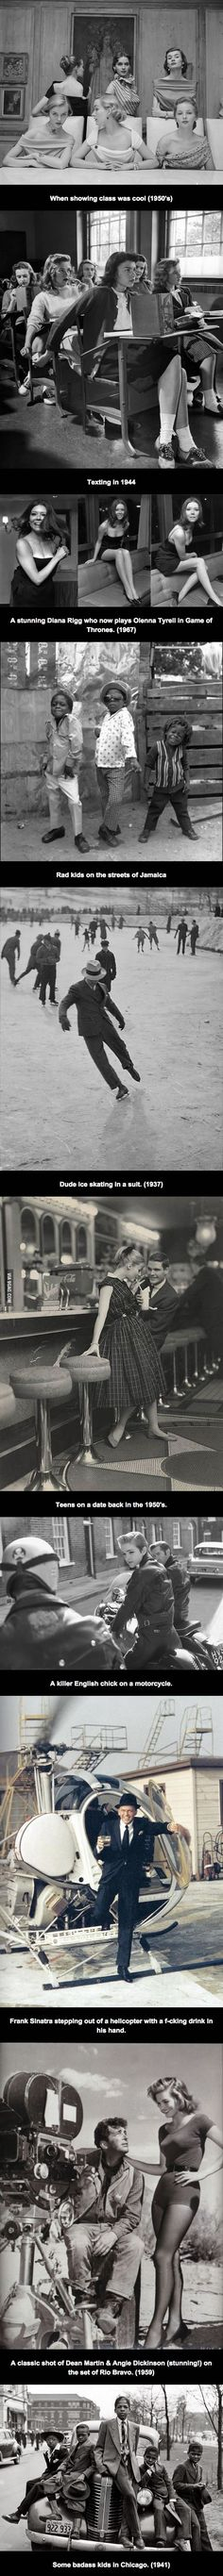 When men had style and women, self respect.